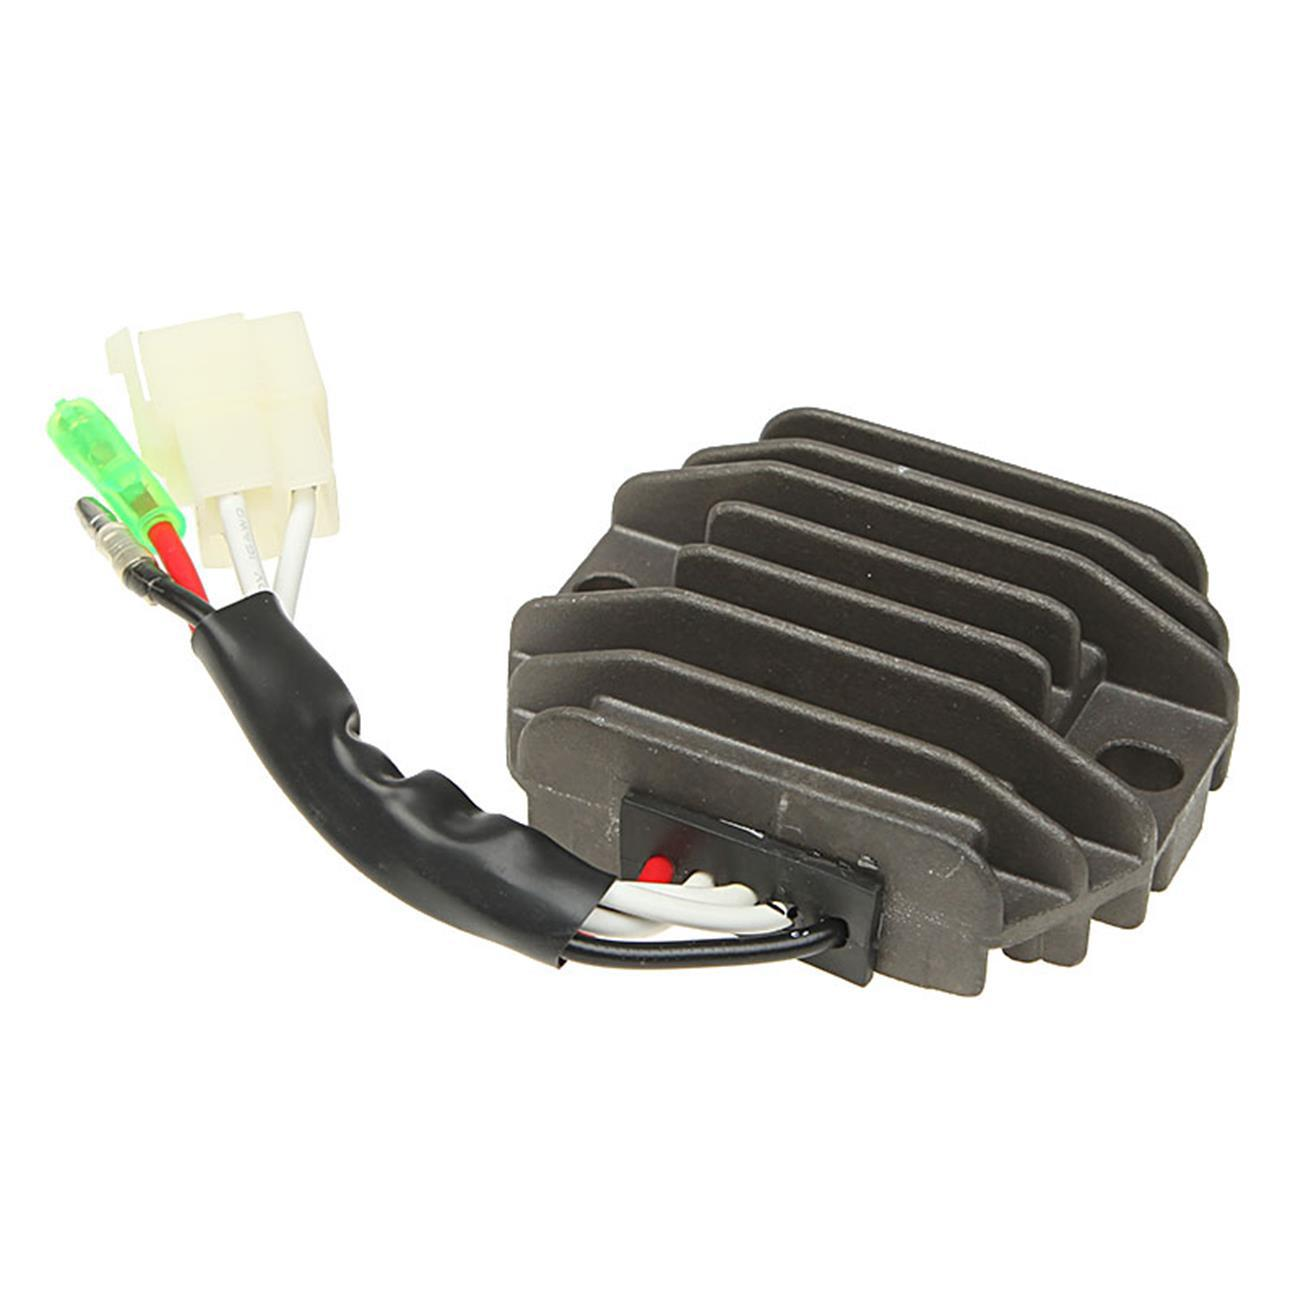 Voltage Regulator Rectifier Fits 1996-2001 Yamaha Warrior 350 YFM350X YFM-350X YFM350 1996 1997 1998 1999 2000 2001 Grizzly Bear Tracker Big Bear Bruin Raptor Wolverine Kodiak 100/% New